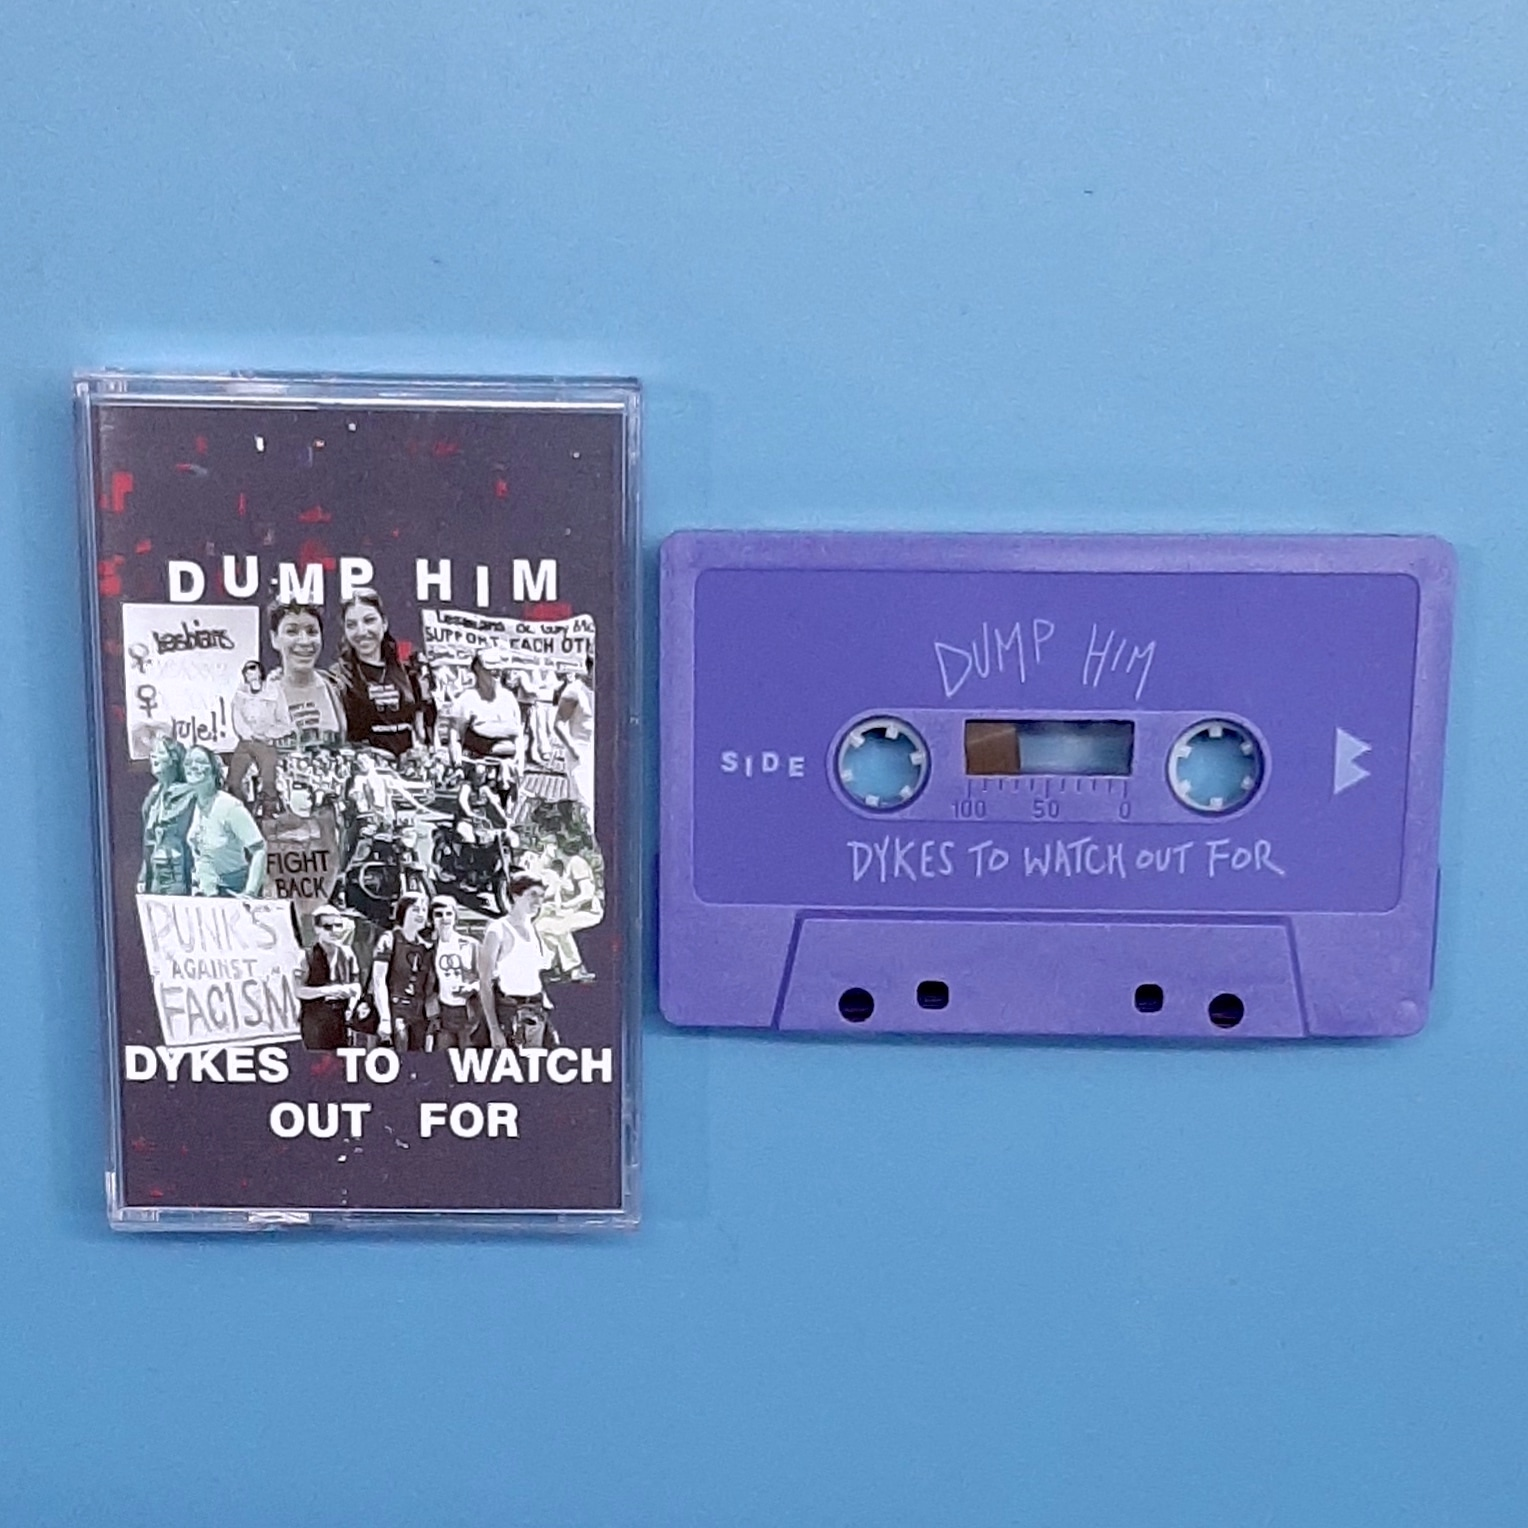 DUMP HIM - Dykes to Watch out For (Get Better Records)